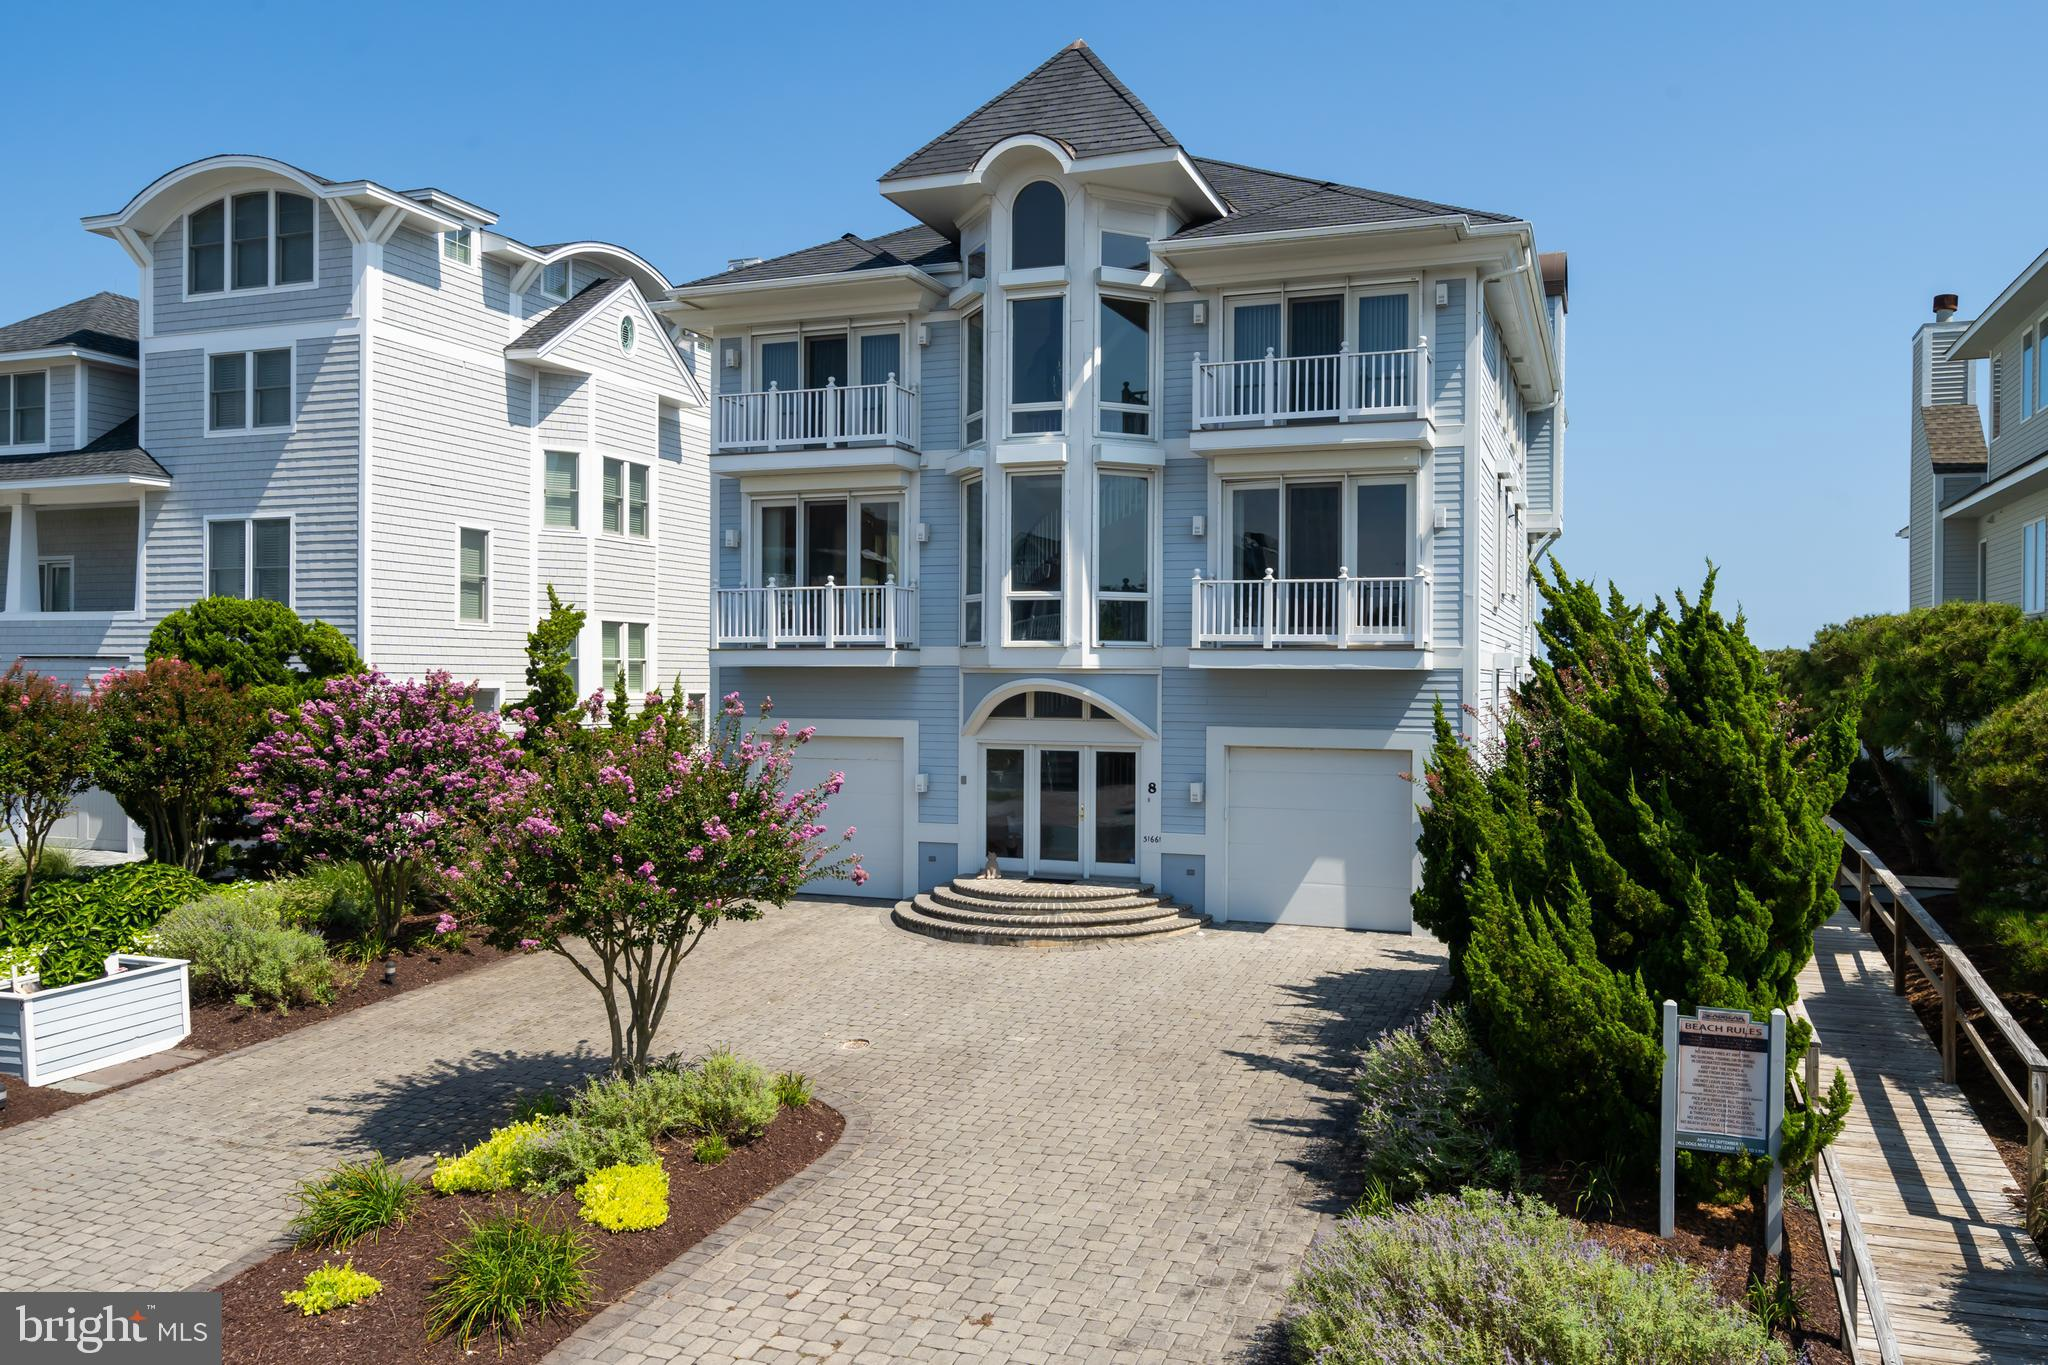 New price for an impeccable oceanfront home in Seabreak!  The care and planning that went into the design and construction of this residence is evident from the moment you enter the paved curved driveway and are greeted by the carved wooden staircase within the entreway.  The feeling of spaciousness and light is throughout the home, with 9' ceilings on the main floor, 8' on the ground floor, and vaulted ceilings on the third floor.  The abundance of windows throughout allows the panoramic ocean views to be seen from almost every angle of the living space. There is ample room for family and friends, with 5 spacious bedrooms, 6 full baths, and one half bath.  An additional room, with locking closet and its own balconey, could also be used as an additional bedroom. There are two large suites on the third floor, each with its own oceanfront deck, fireplace, and full baths.  This is especially beneficial if there is co-ownership of the home. An additional room on the ground floor, which is currently being used as a game/rec room, would also be a good sized bedroom, with an adjacent full bath.  Two complete laundry rooms, one located on the ground floor where beach access is, the second on the main floor, provide easy workspace for those necessary tasks that  come with beach enjoyment. The living, dining, and kitchen areas are open and take full advantage of that ocean view the home was designed around.  There is almost unlimited space for entertaining, and enjoying the company of friends and family.  Once you step outside, the grand deck, with tempered safety glass railings so as not to impede the view, beckons you to sit, relax, and enjoy a drink while taking in the vista that makes this home so captivating. The home is being sold fully furnished, ready for the new owners to enjoy. In addition to the abundant special features of this home, the community of Seabreak offers guarded beaches during the season, tennis, and is an easy walk or bike ride to the town of Bethany 